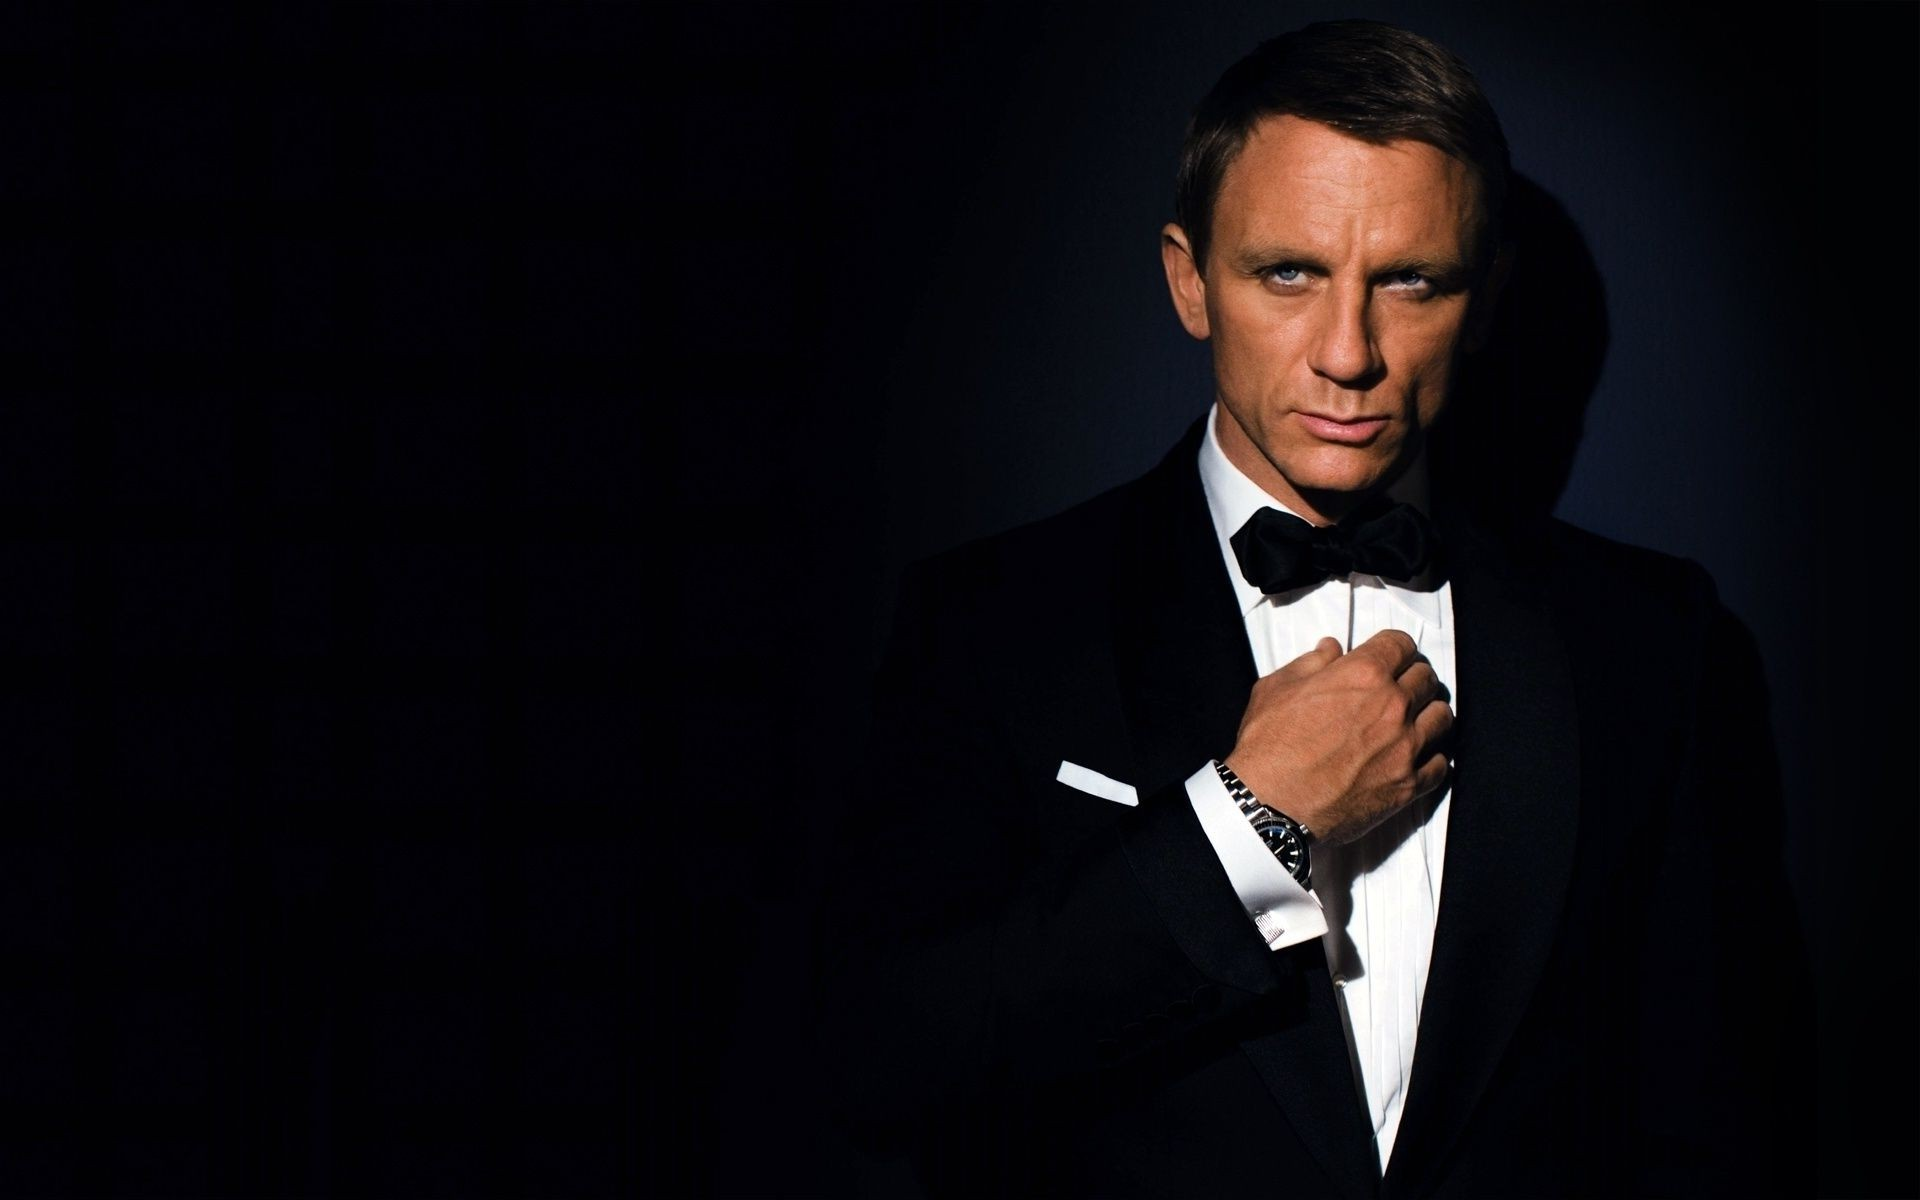 The Suit James Bond Actor Daniel Craig Man 007 IPhone Wallpapers For Free